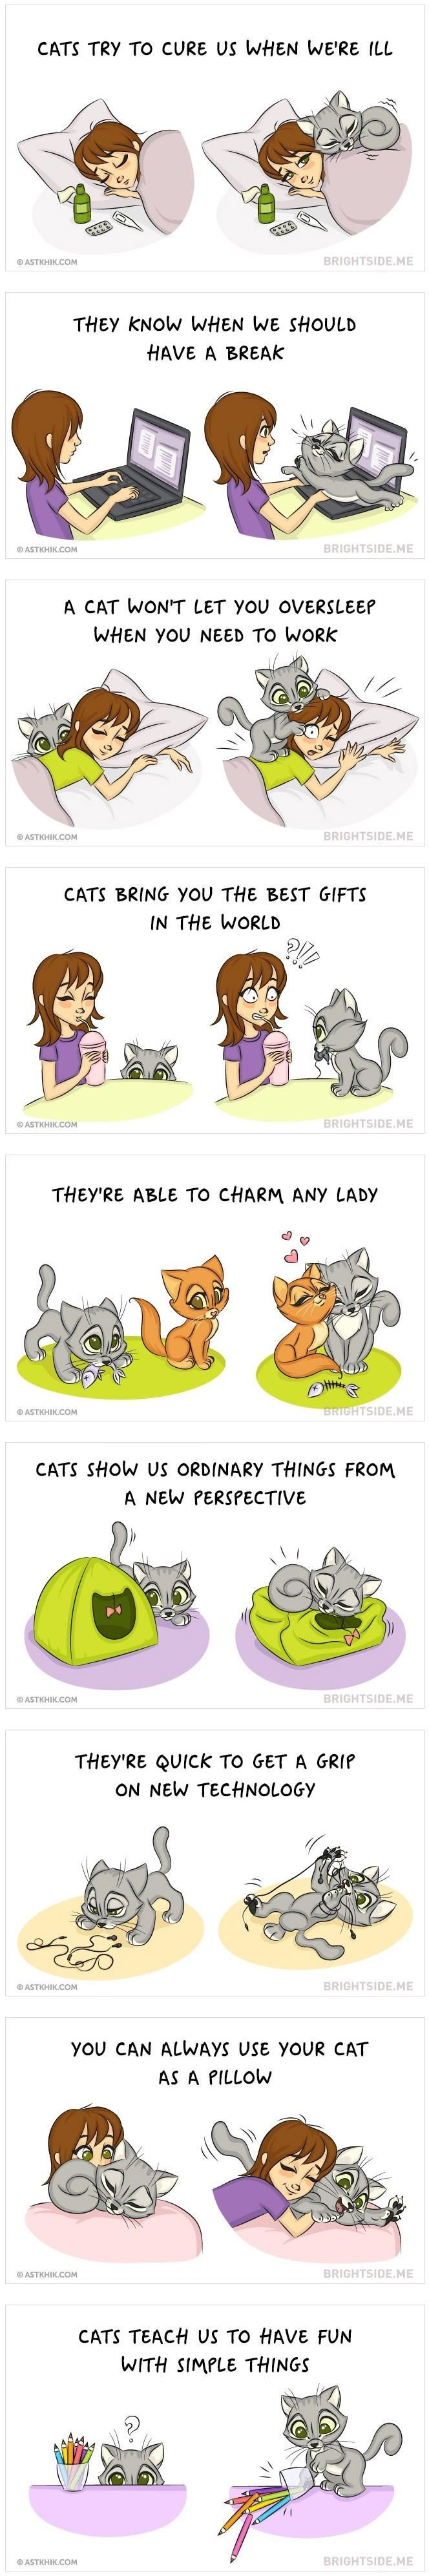 Cats are simply the best! and here are 9 reasons why everyone needs a cat in their life. Credits: ASTKHIK